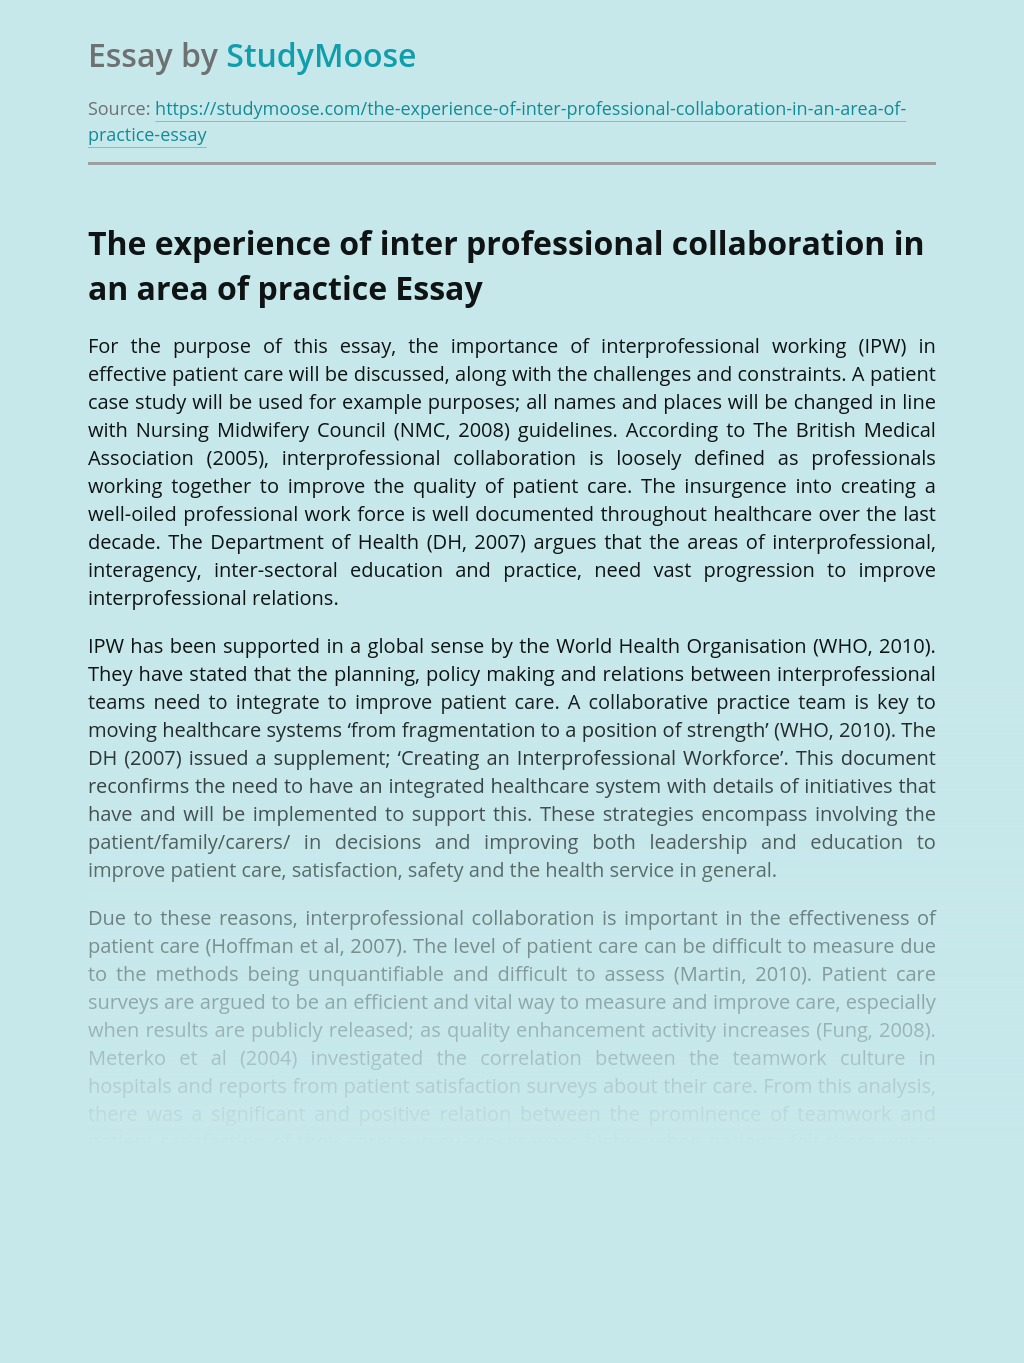 The experience of inter professional collaboration in an area of practice